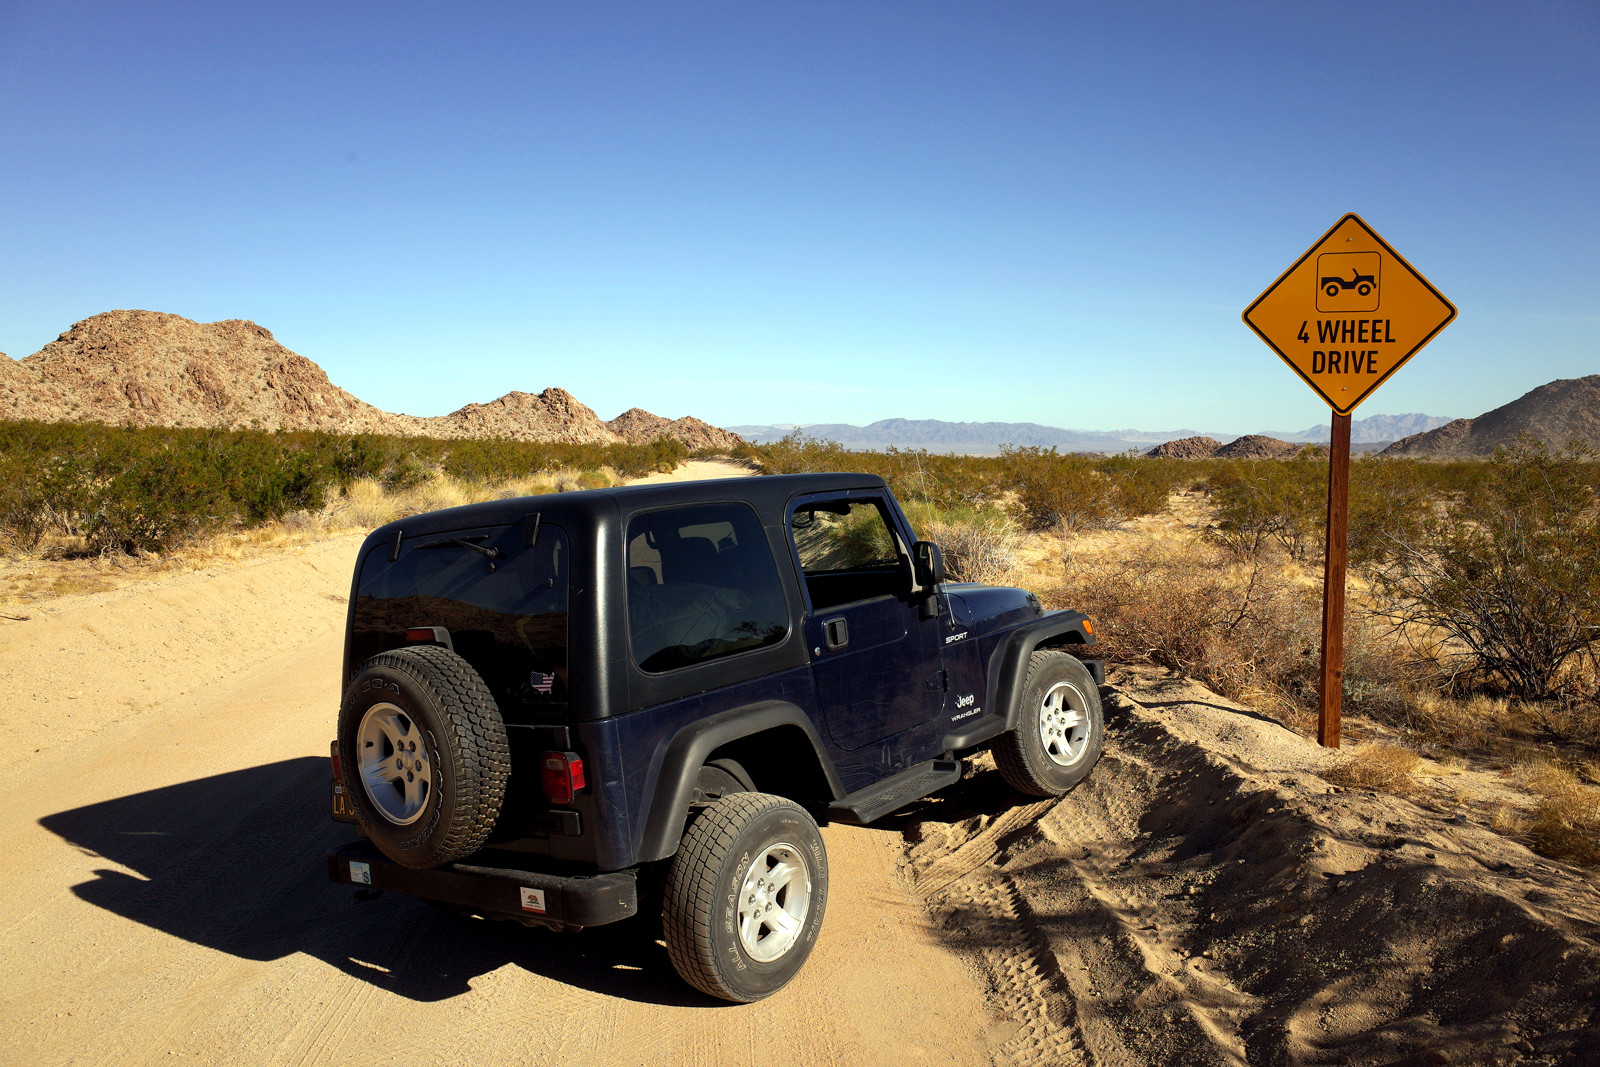 La Jeep posing with the 4 Wheel Drive sign on Old Dale Road in Joshua Tree National Park